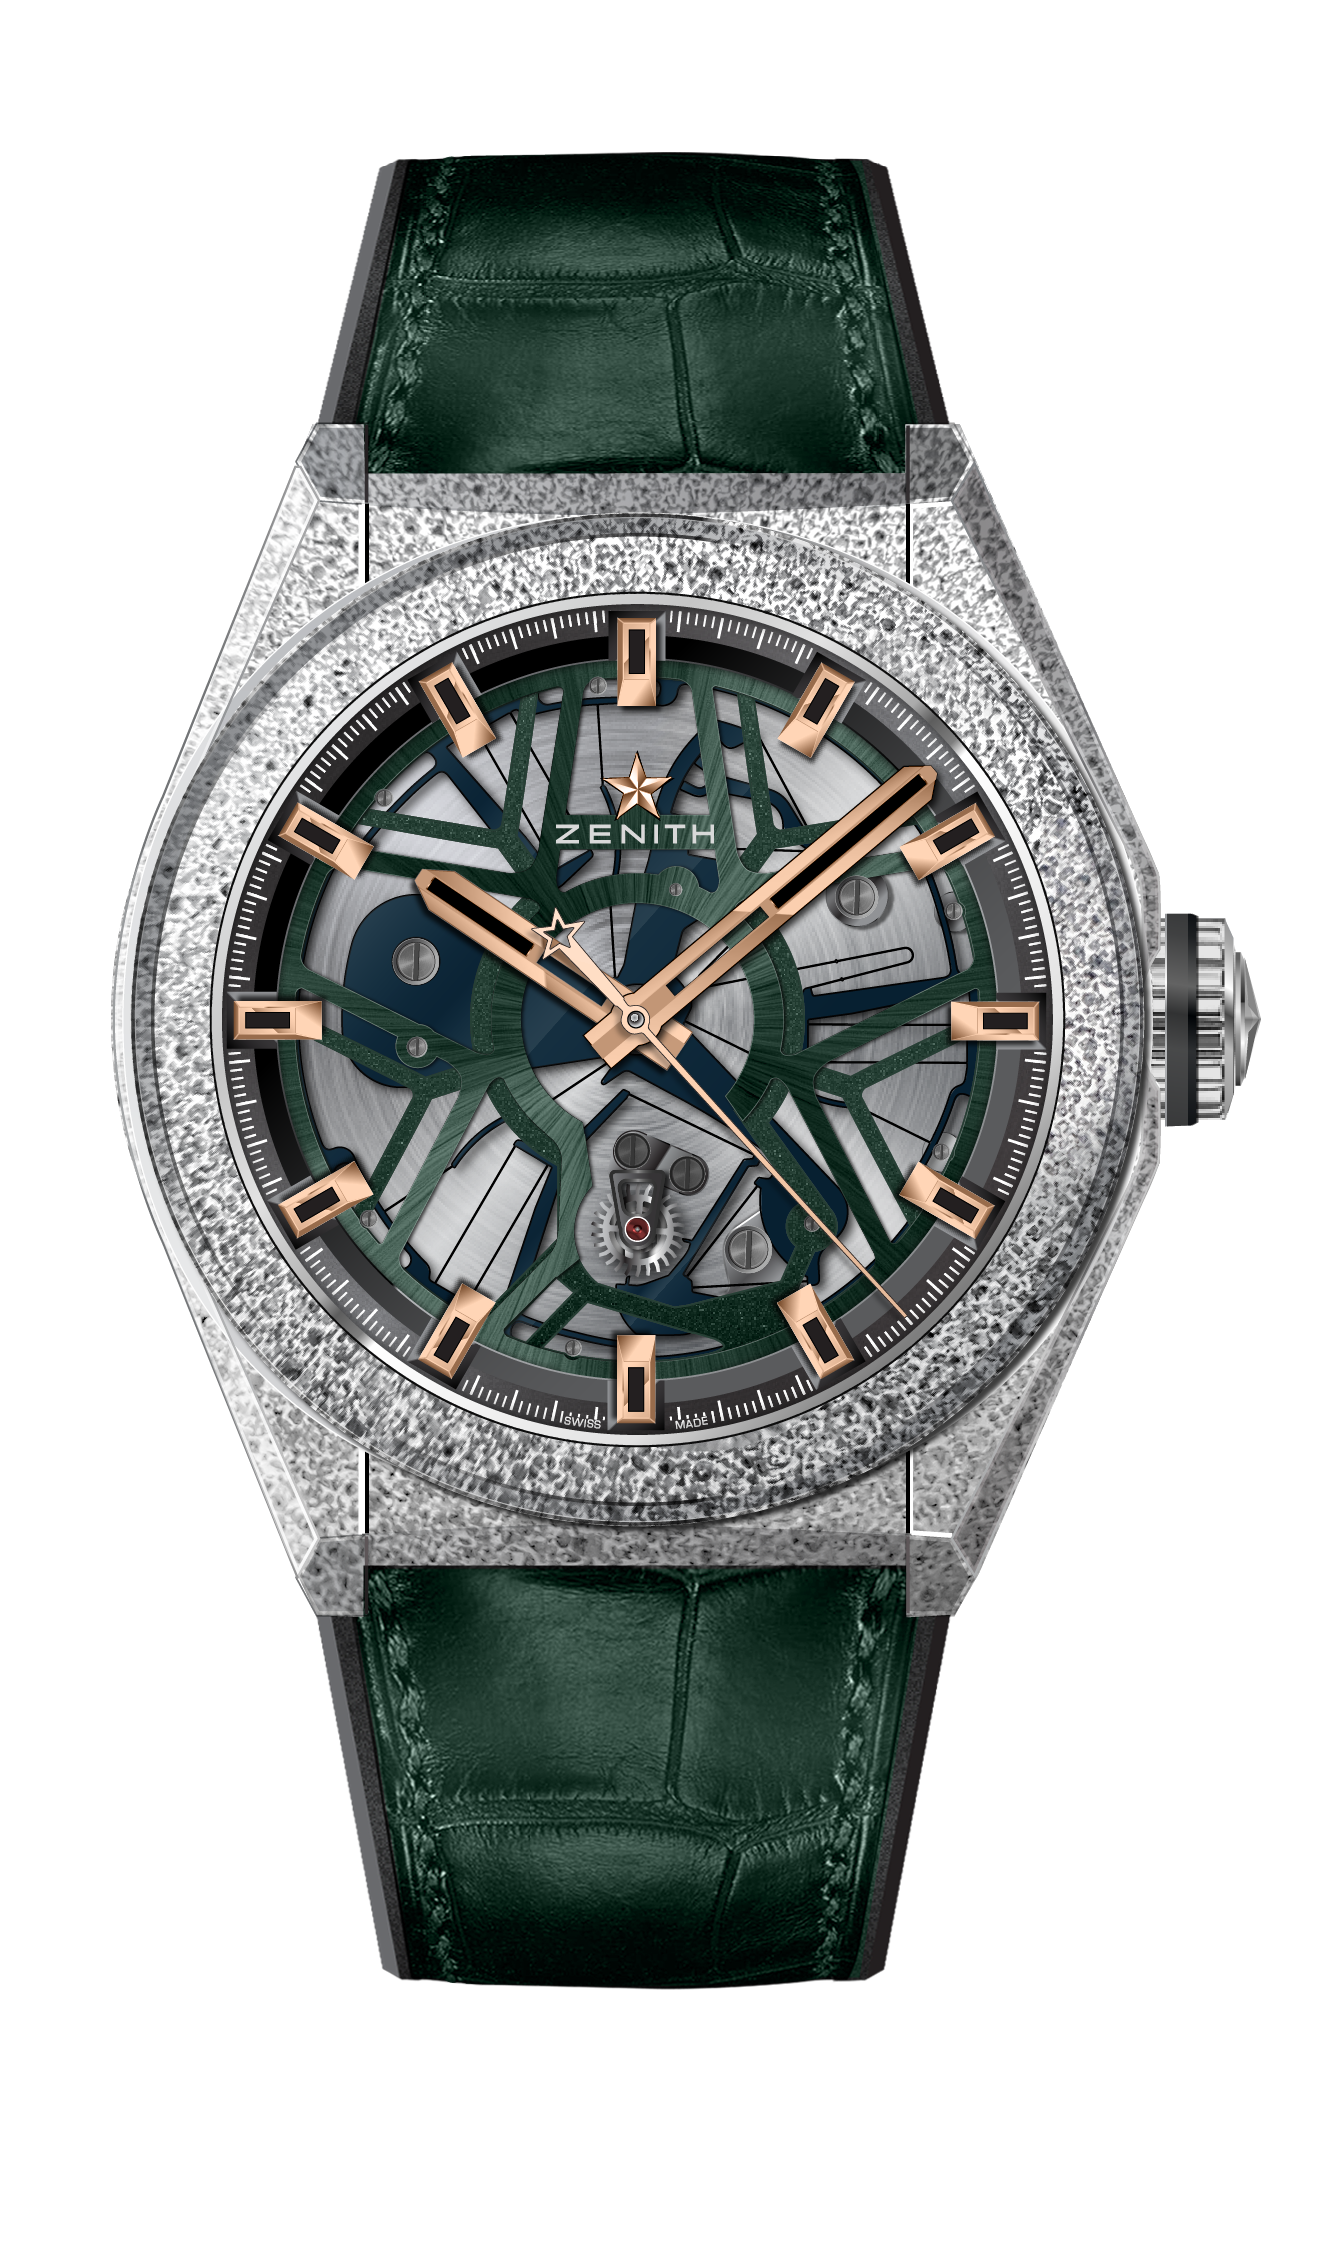 ZENITH Defy Lab B 9b Green Rose Gold